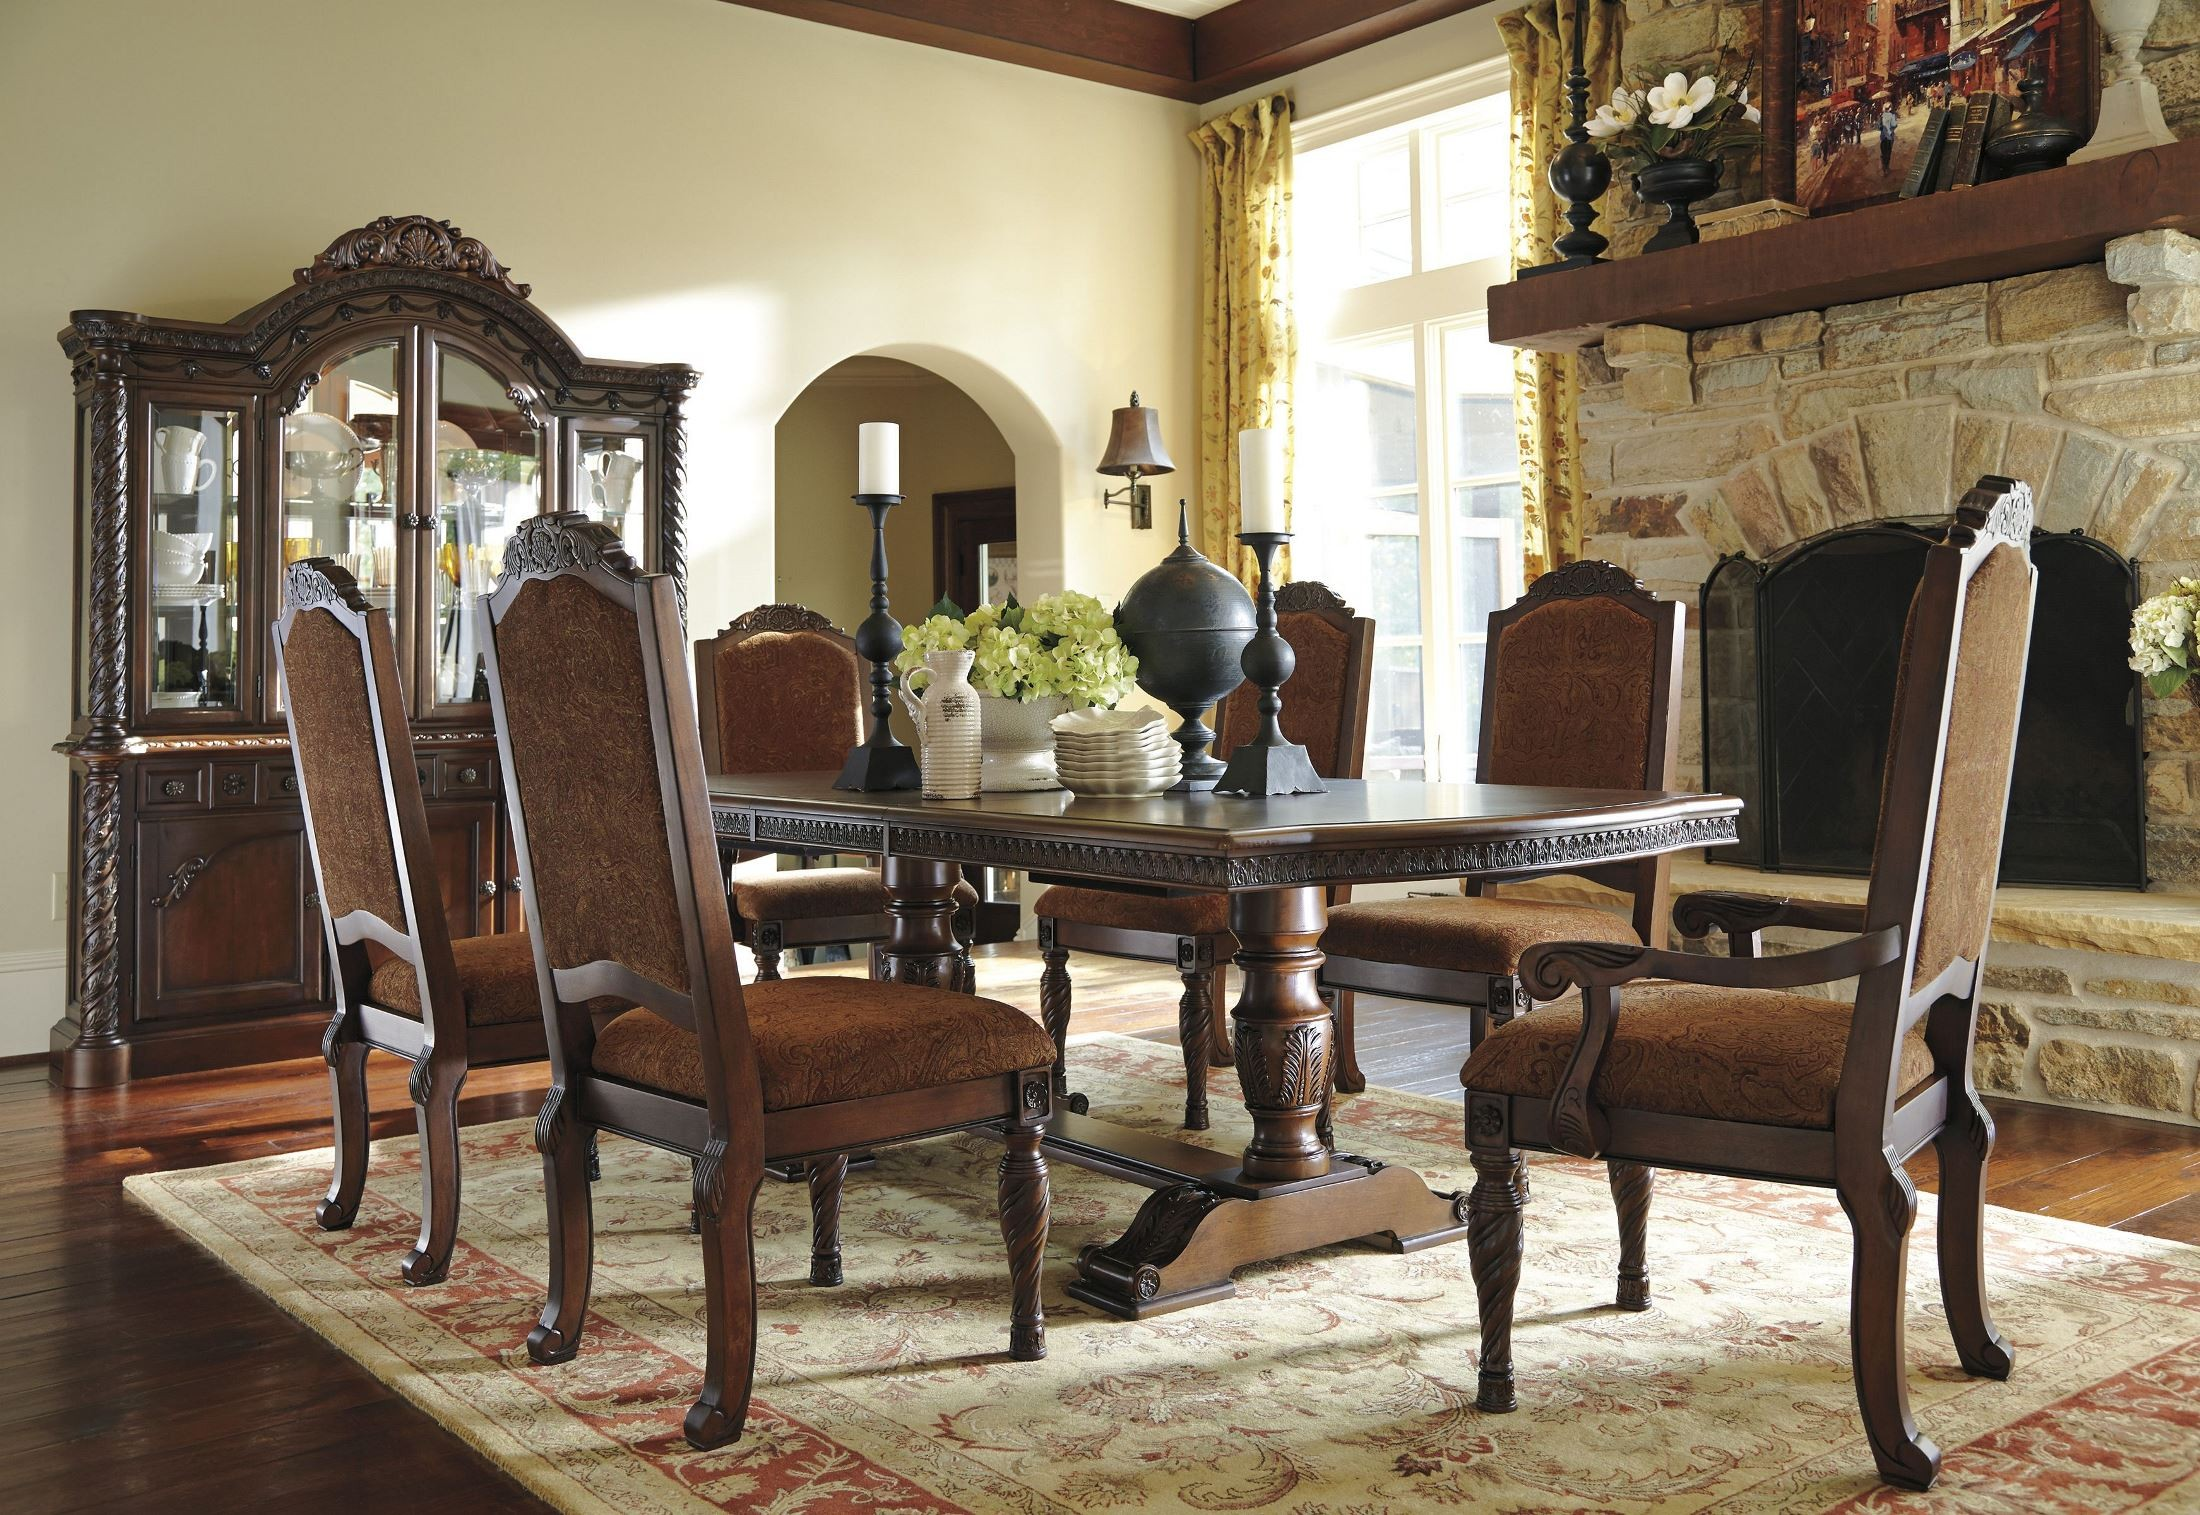 North shore double pedestal extendable dining room set from ashley d553 55 coleman furniture - Ashley north shore dining room set ...